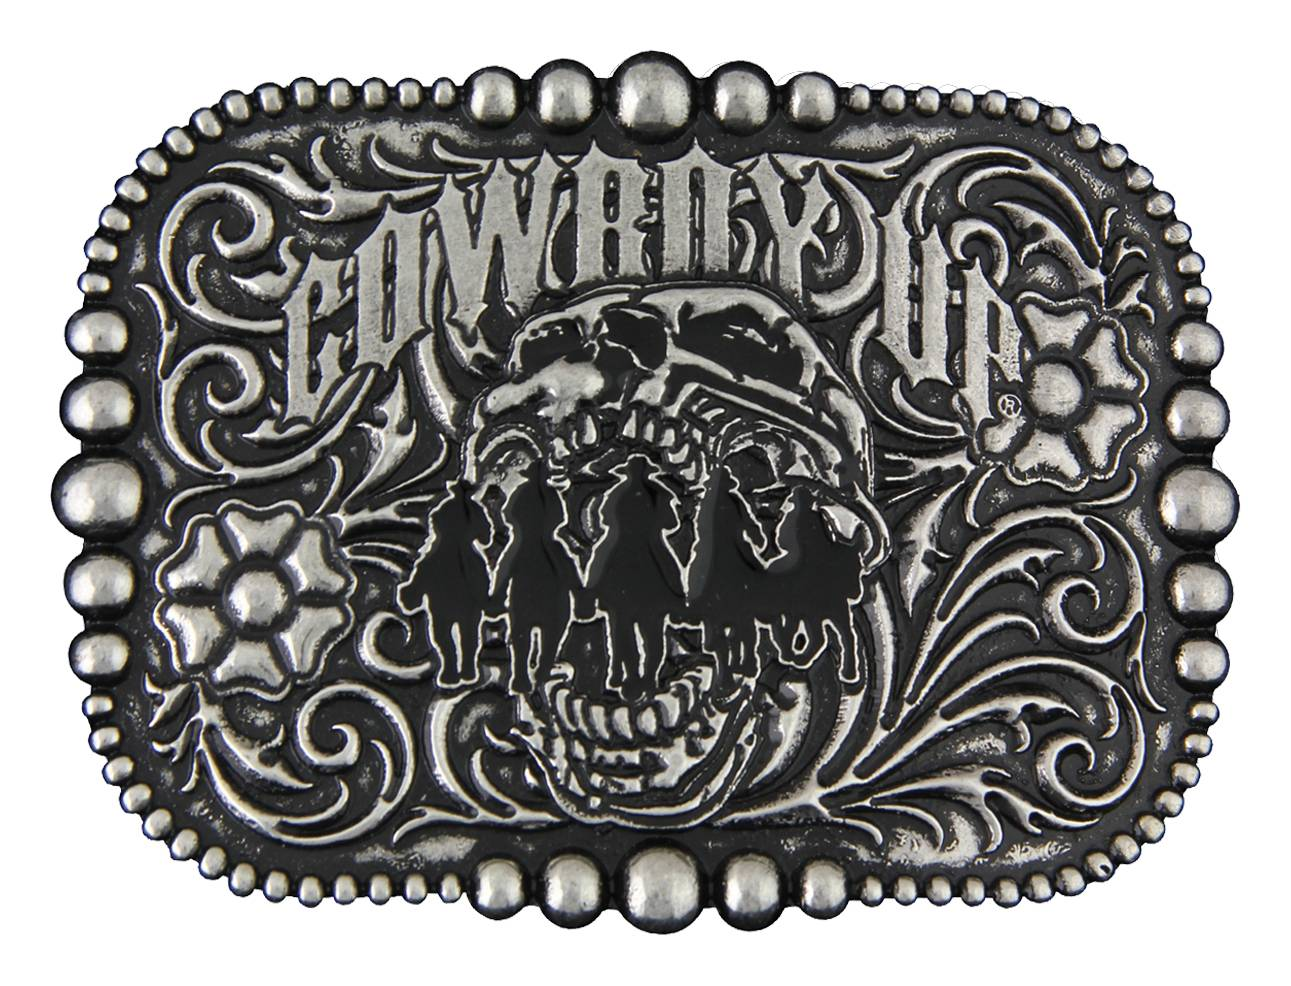 Montana Silversmiths Cowboy Up Posse Attitude Buckle